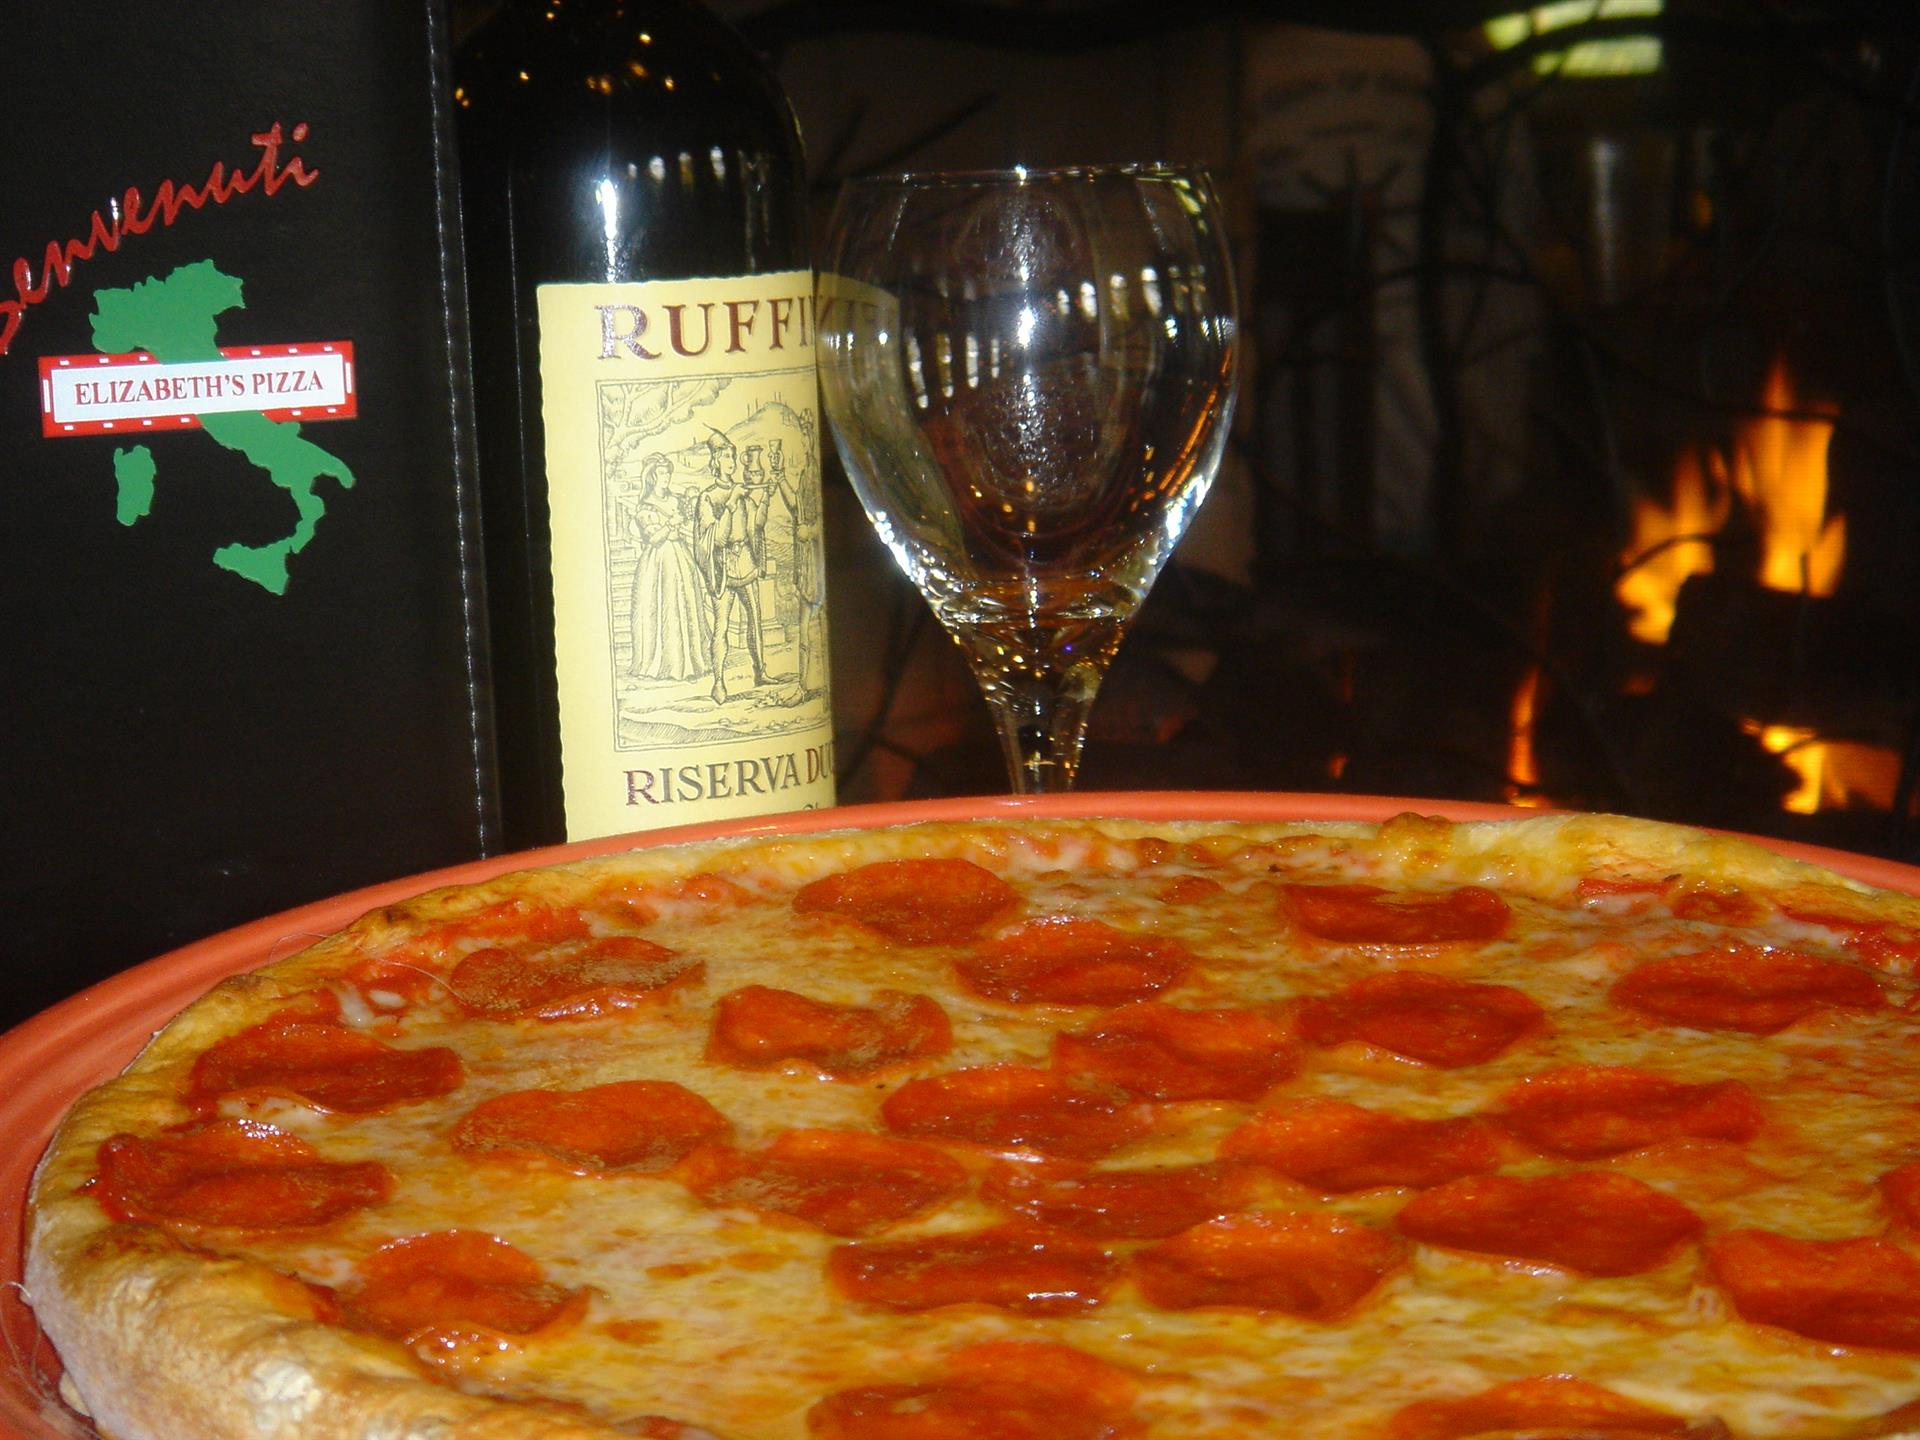 pepperoni pizza with wine bottle and glass in the background